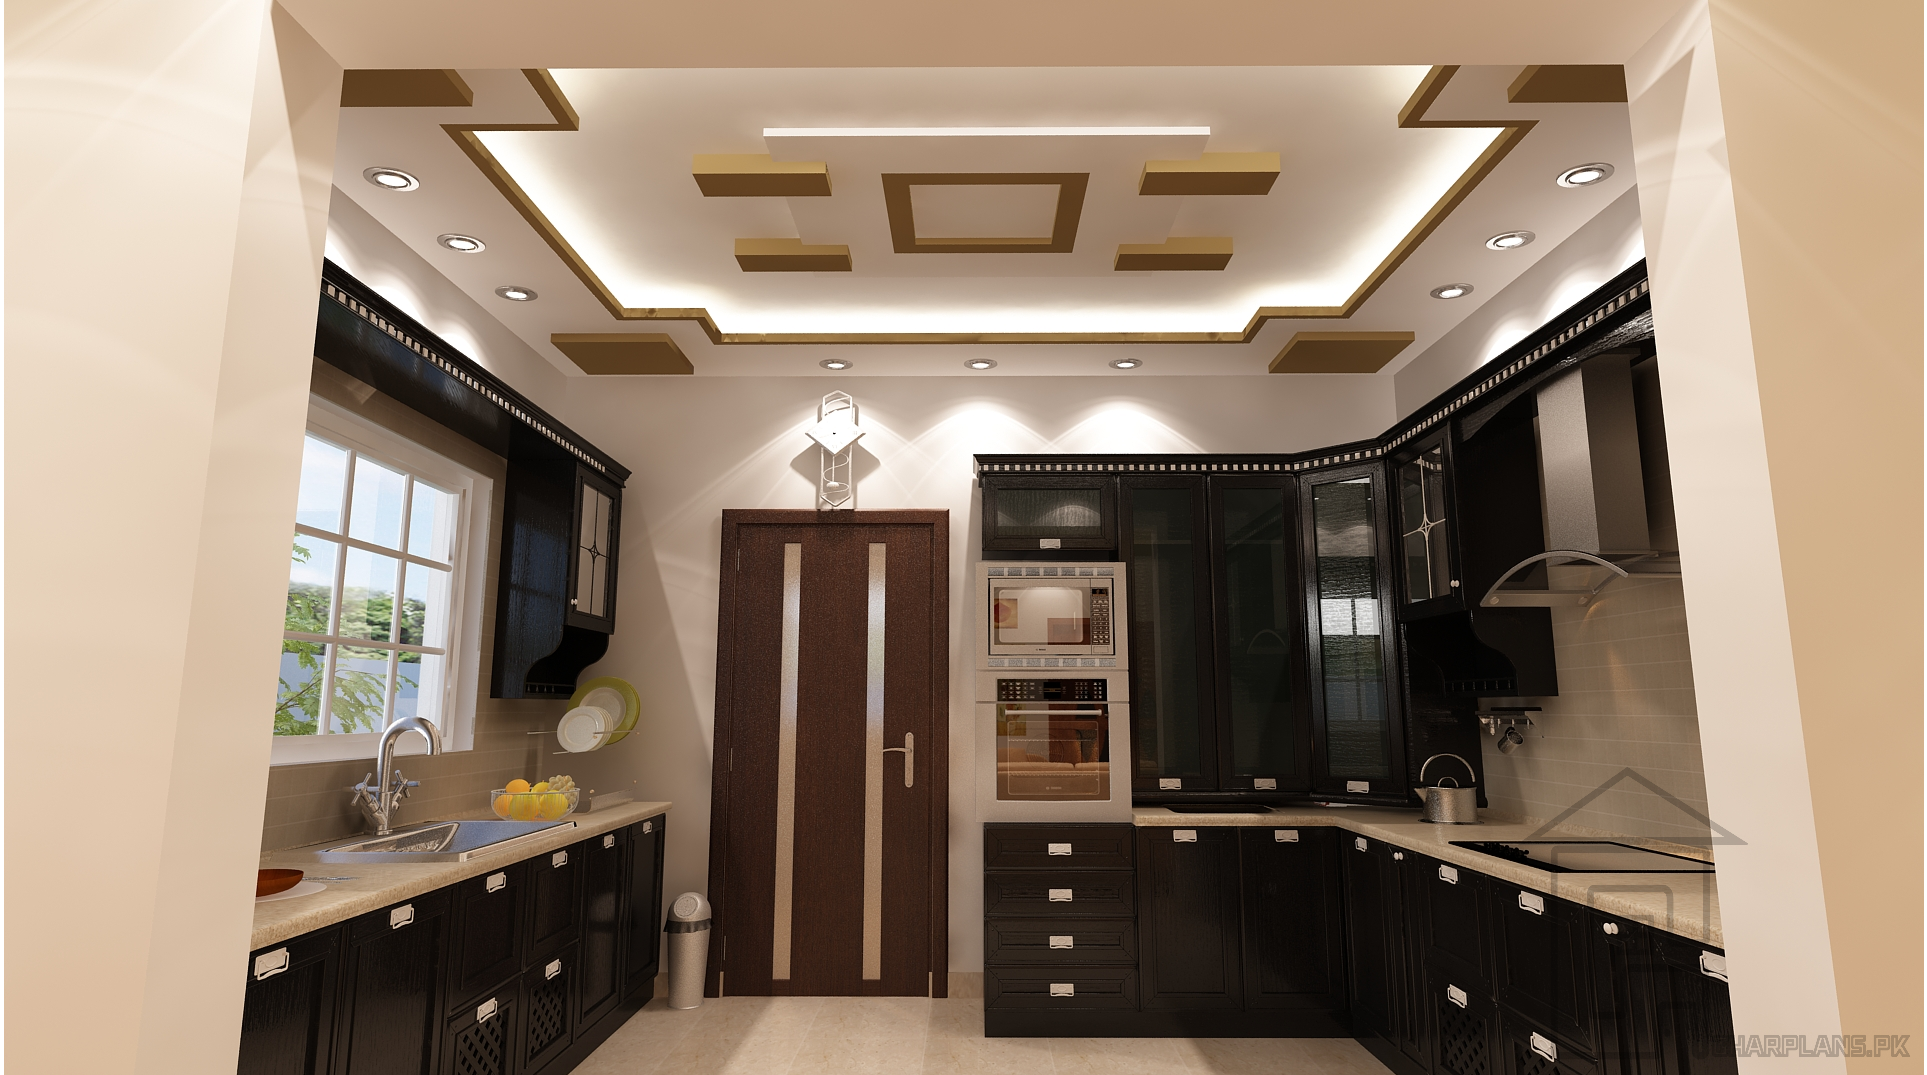 Pakistani Kitchen Design With False Ceiling Design And Most Of The